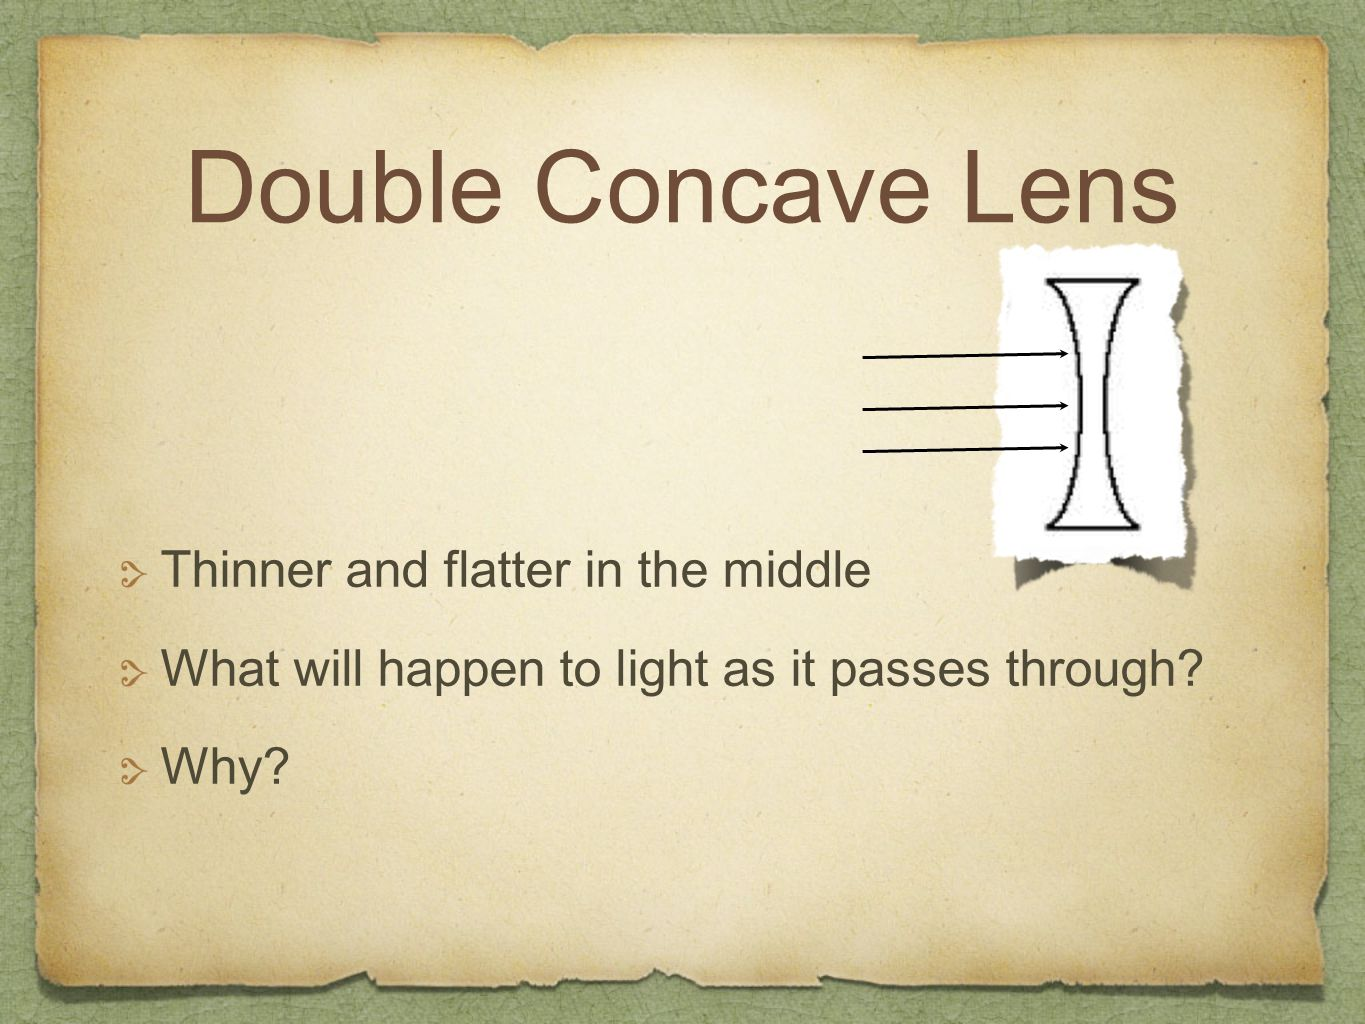 Double Concave Lens Thinner and flatter in the middle